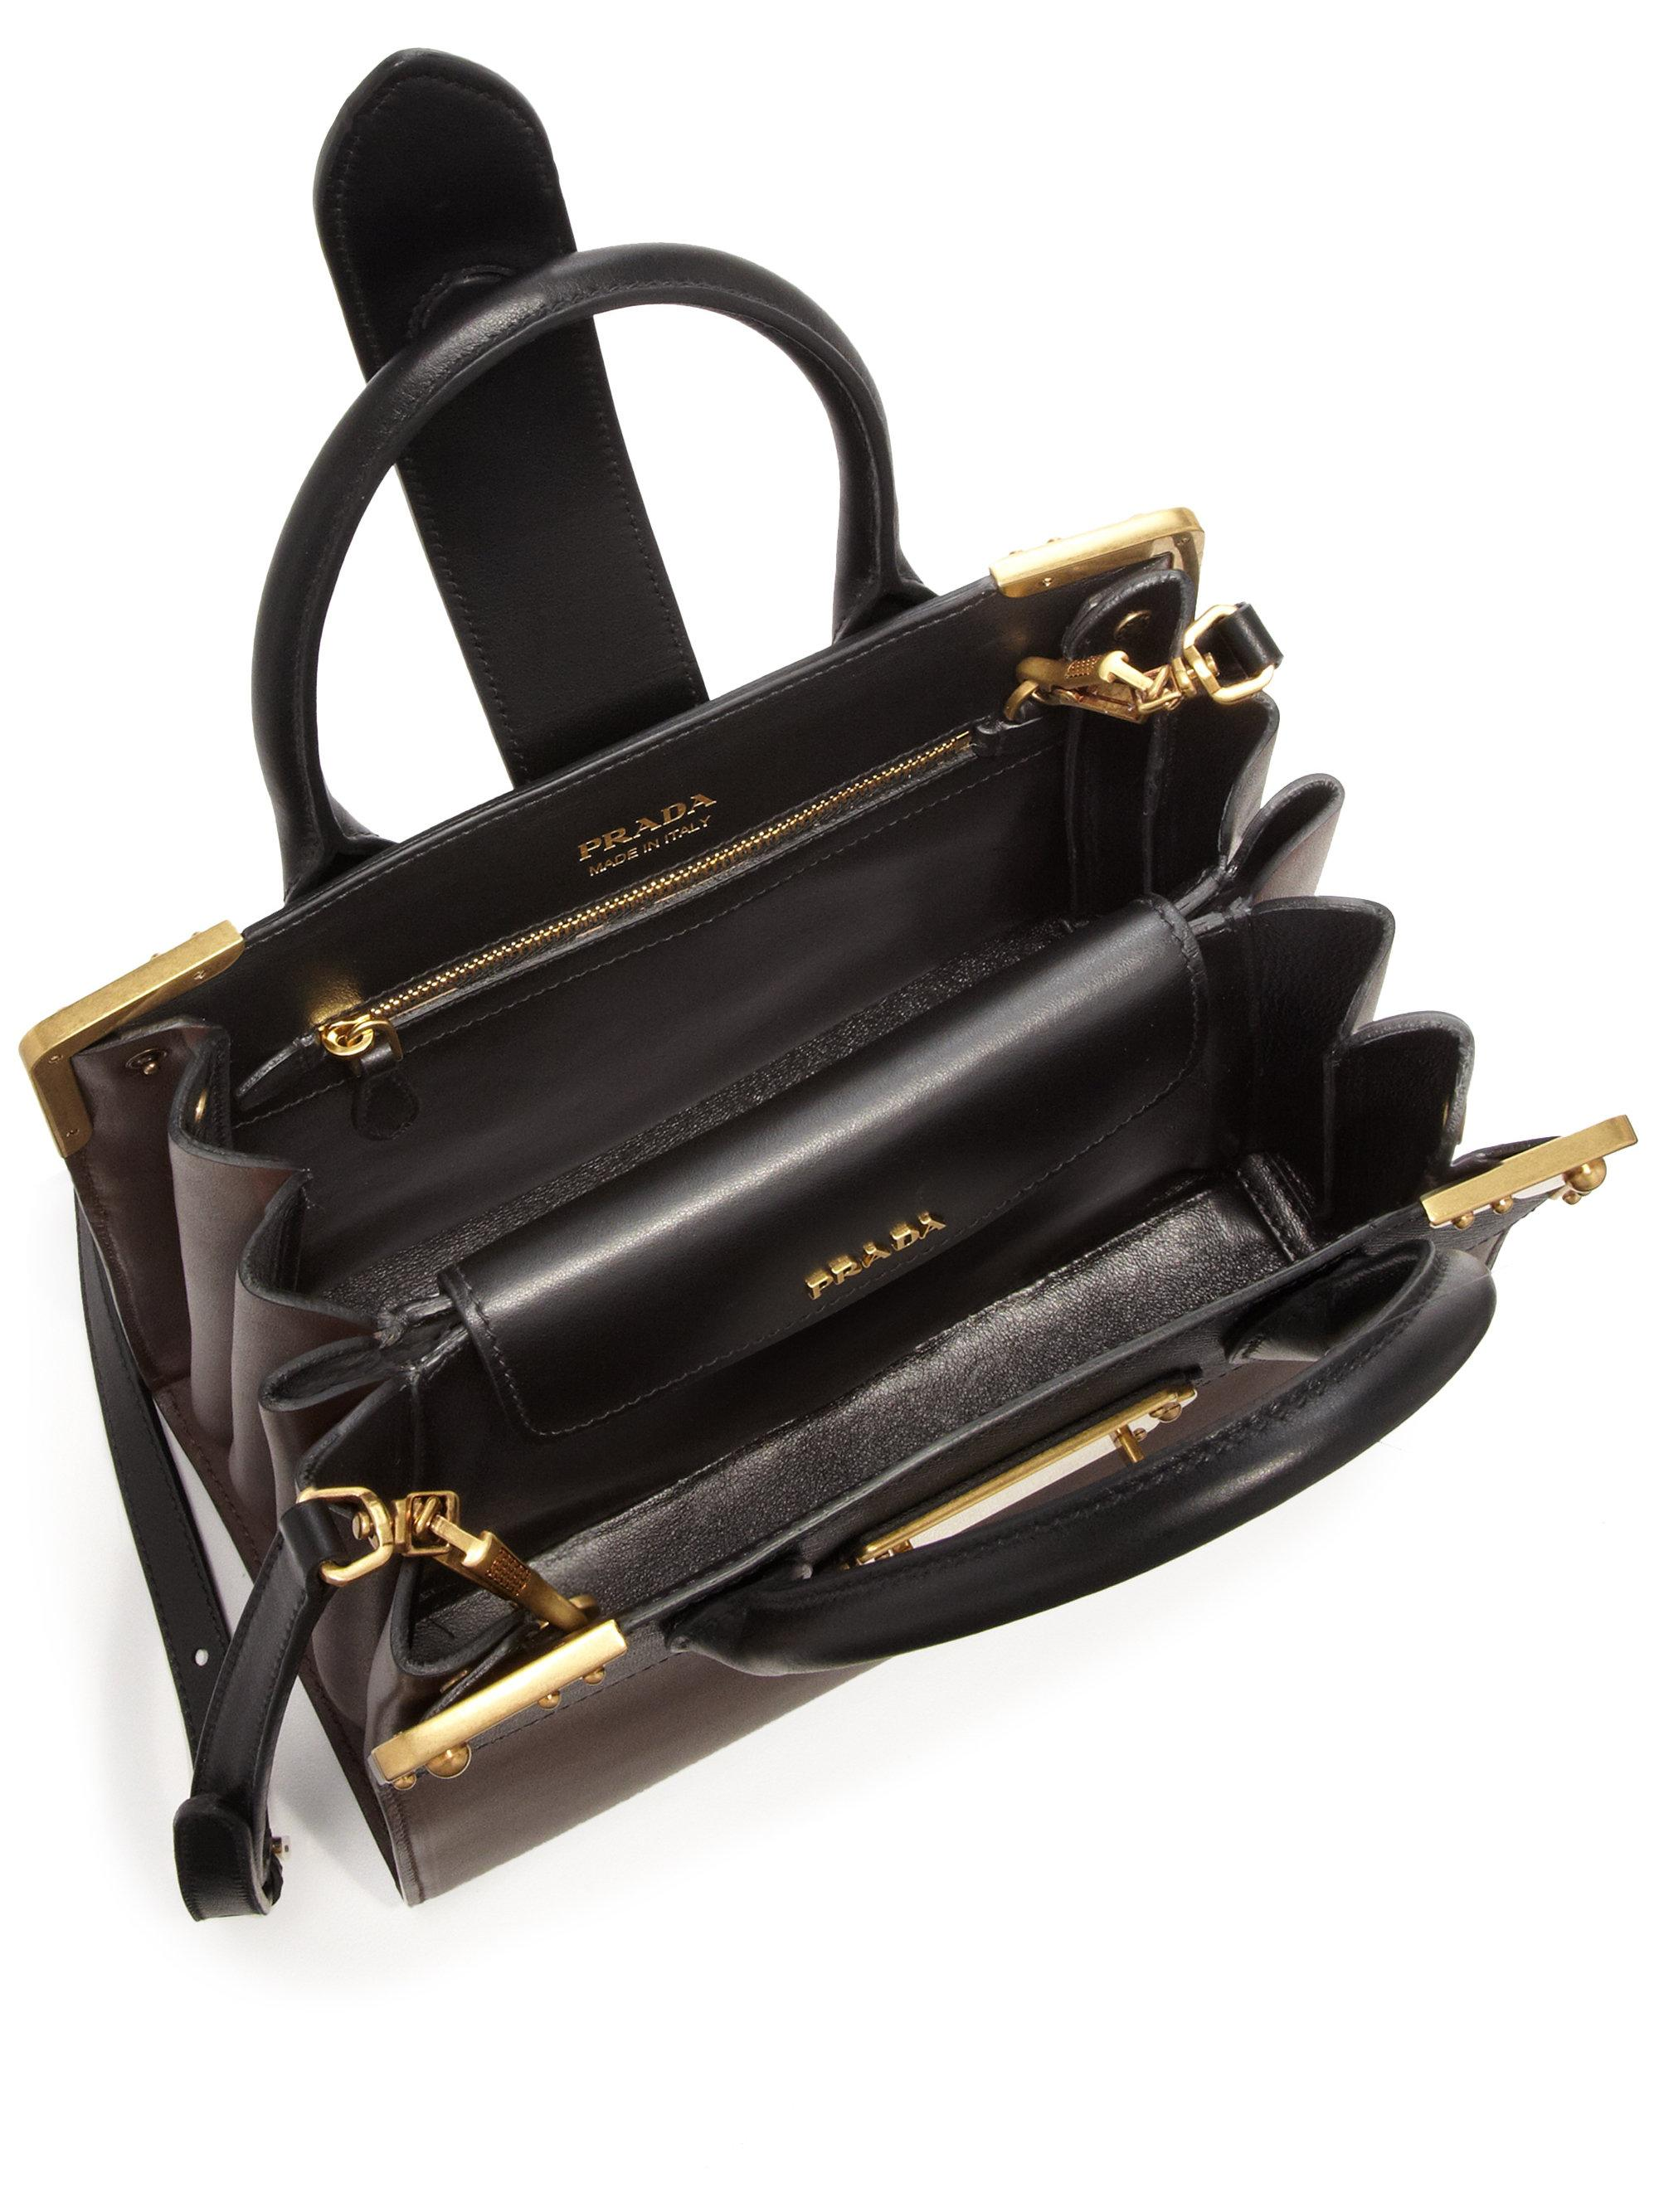 Lyst - Prada Leather Top-handle Accordion Tote 7a56d4e894